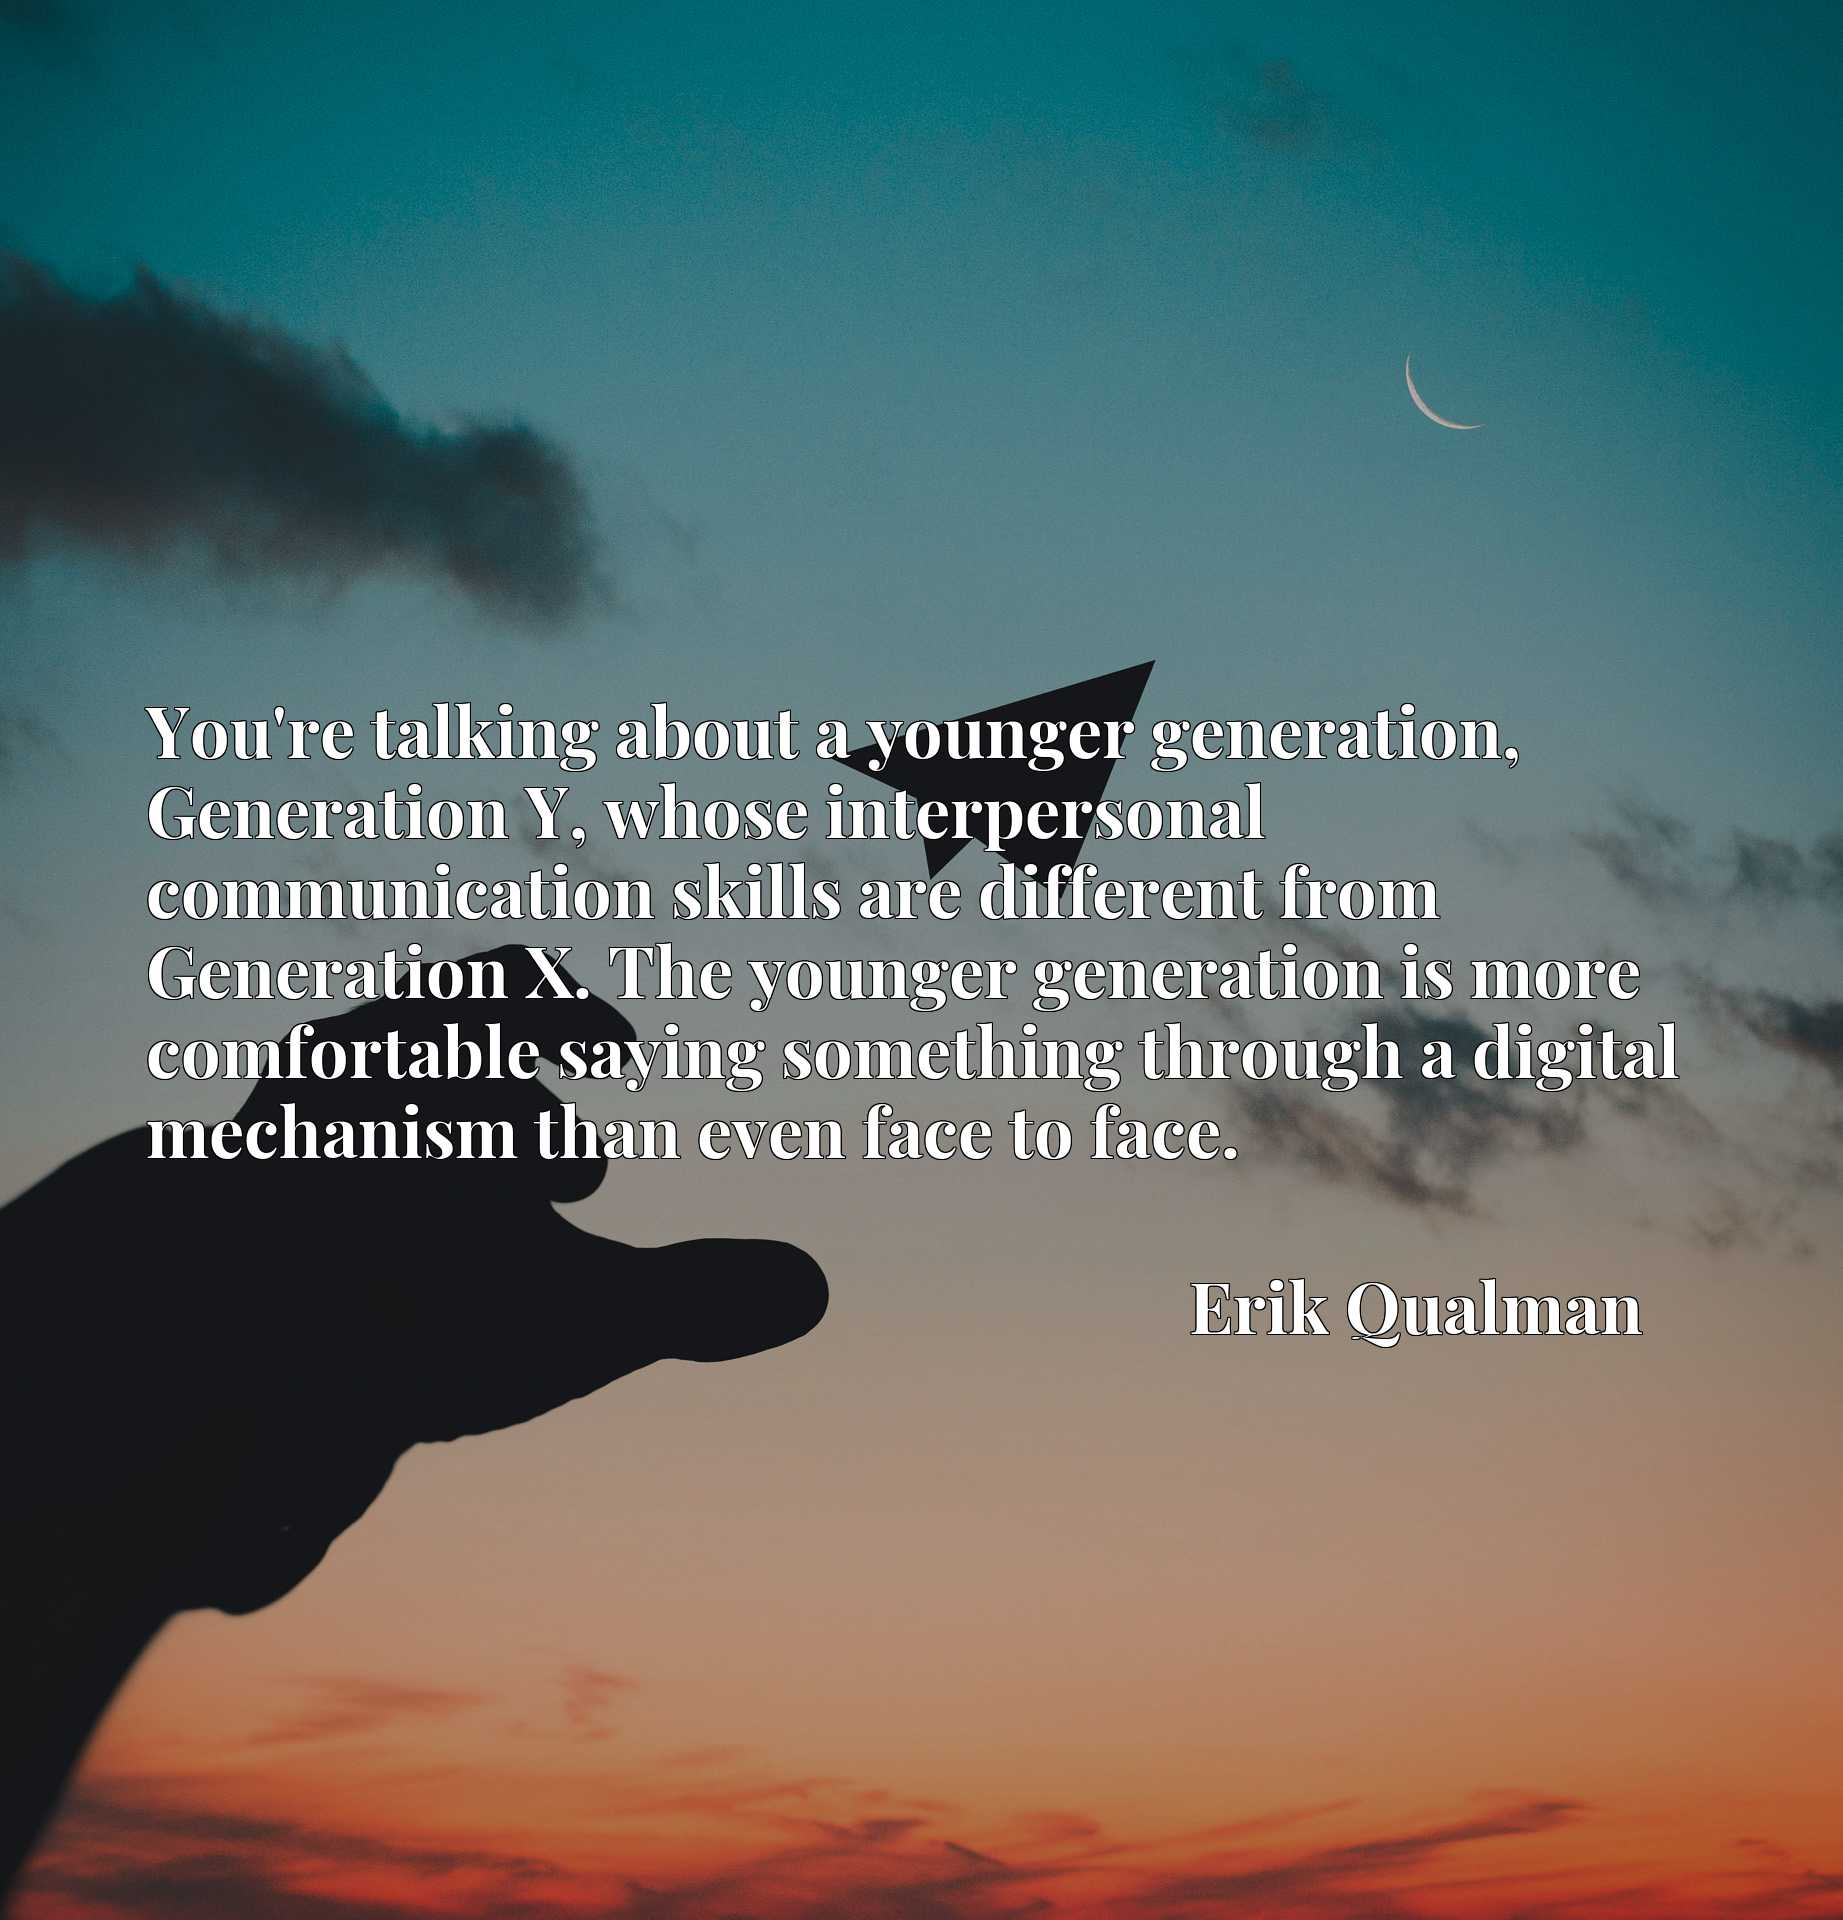 You're talking about a younger generation, Generation Y, whose interpersonal communication skills are different from Generation X. The younger generation is more comfortable saying something through a digital mechanism than even face to face.